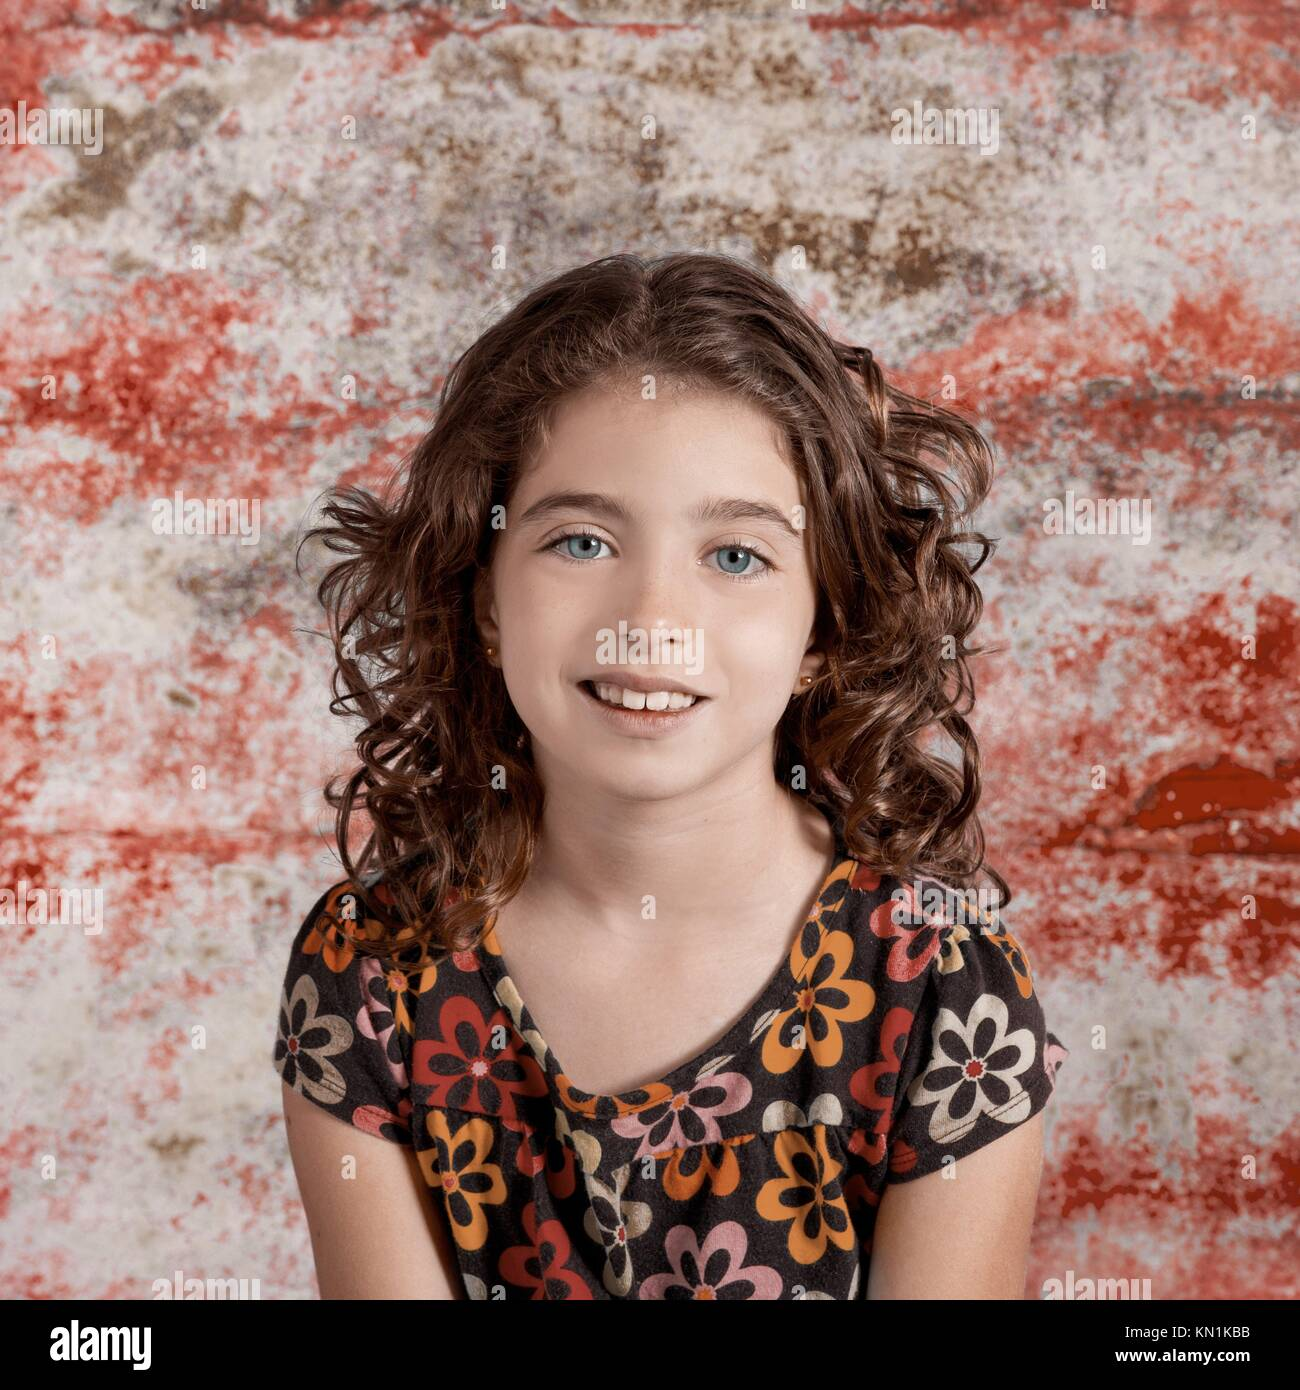 Bunette kid girl portrait smiling in retro vintage color Stock Photo ...